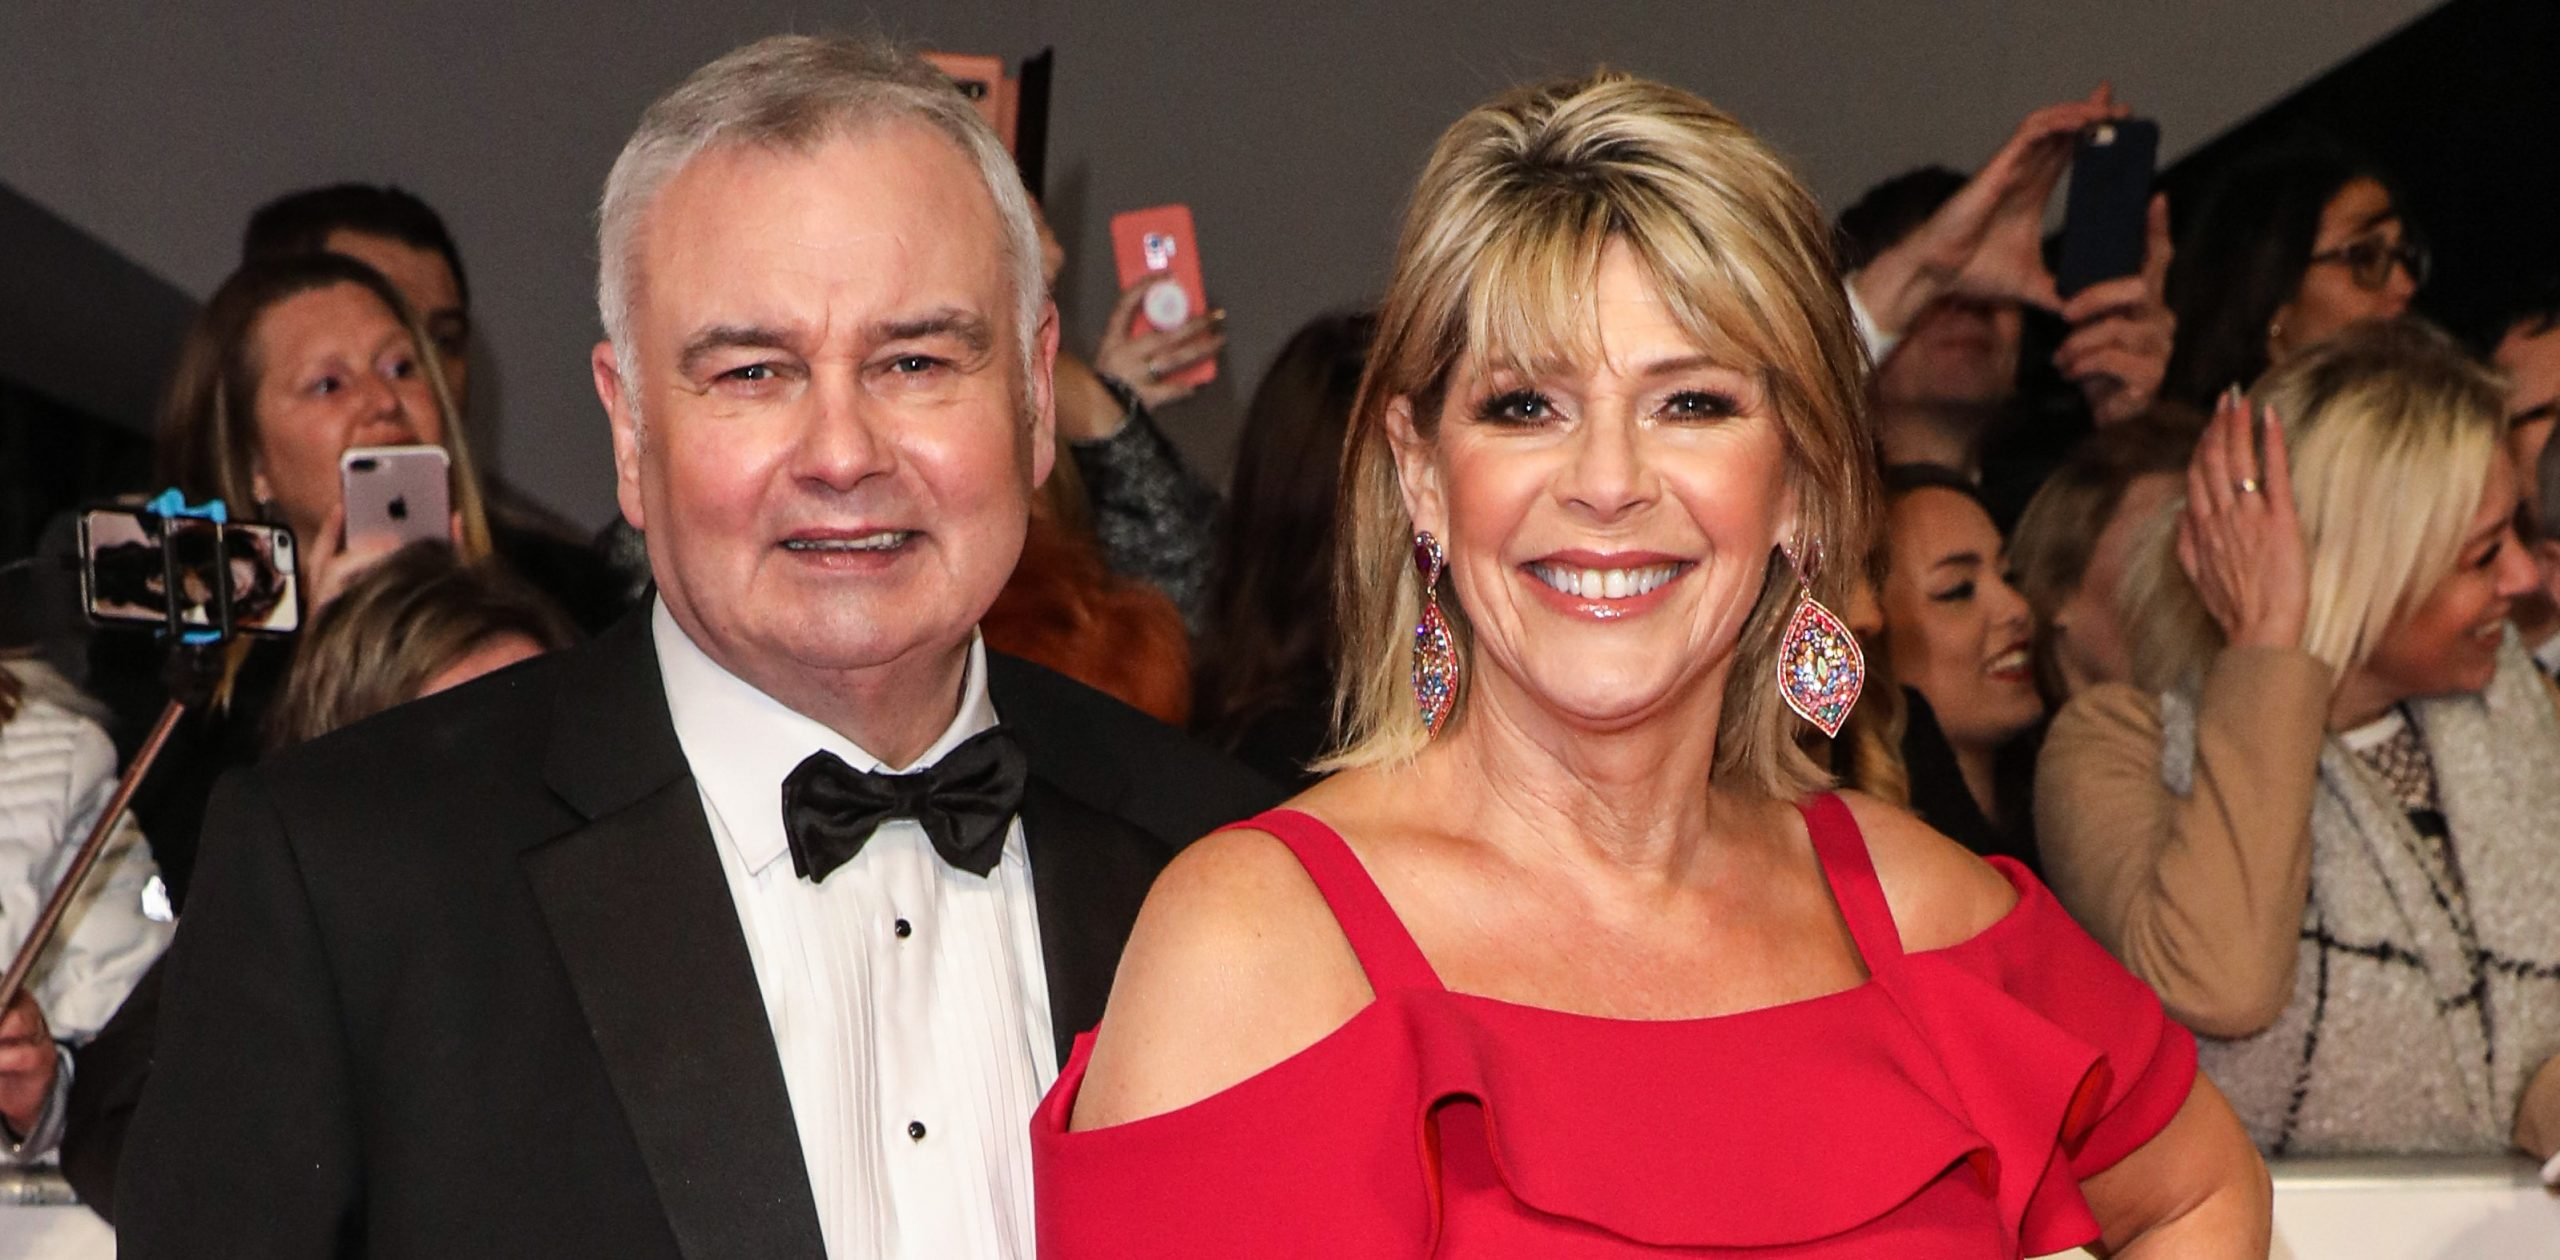 Eamonn Holmes reveals he's 'nursing' Ruth Langsford through 'difficult year' after her sister's death